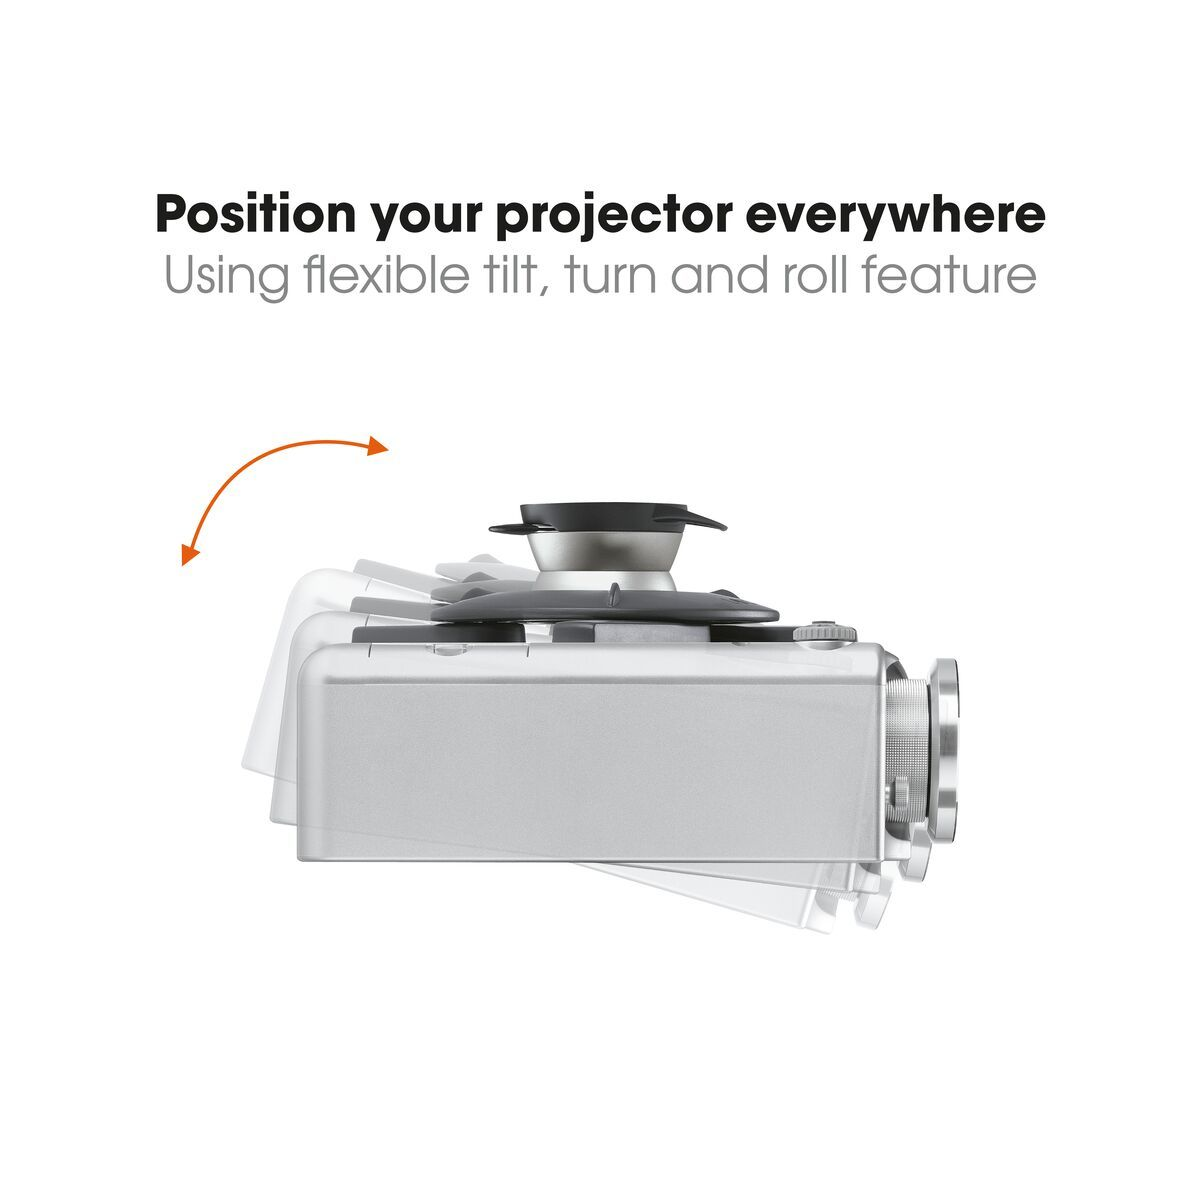 Vogel's EPW 6565 Projector Wall Mount - Max. weight load: 10 - Max. weight load: USP